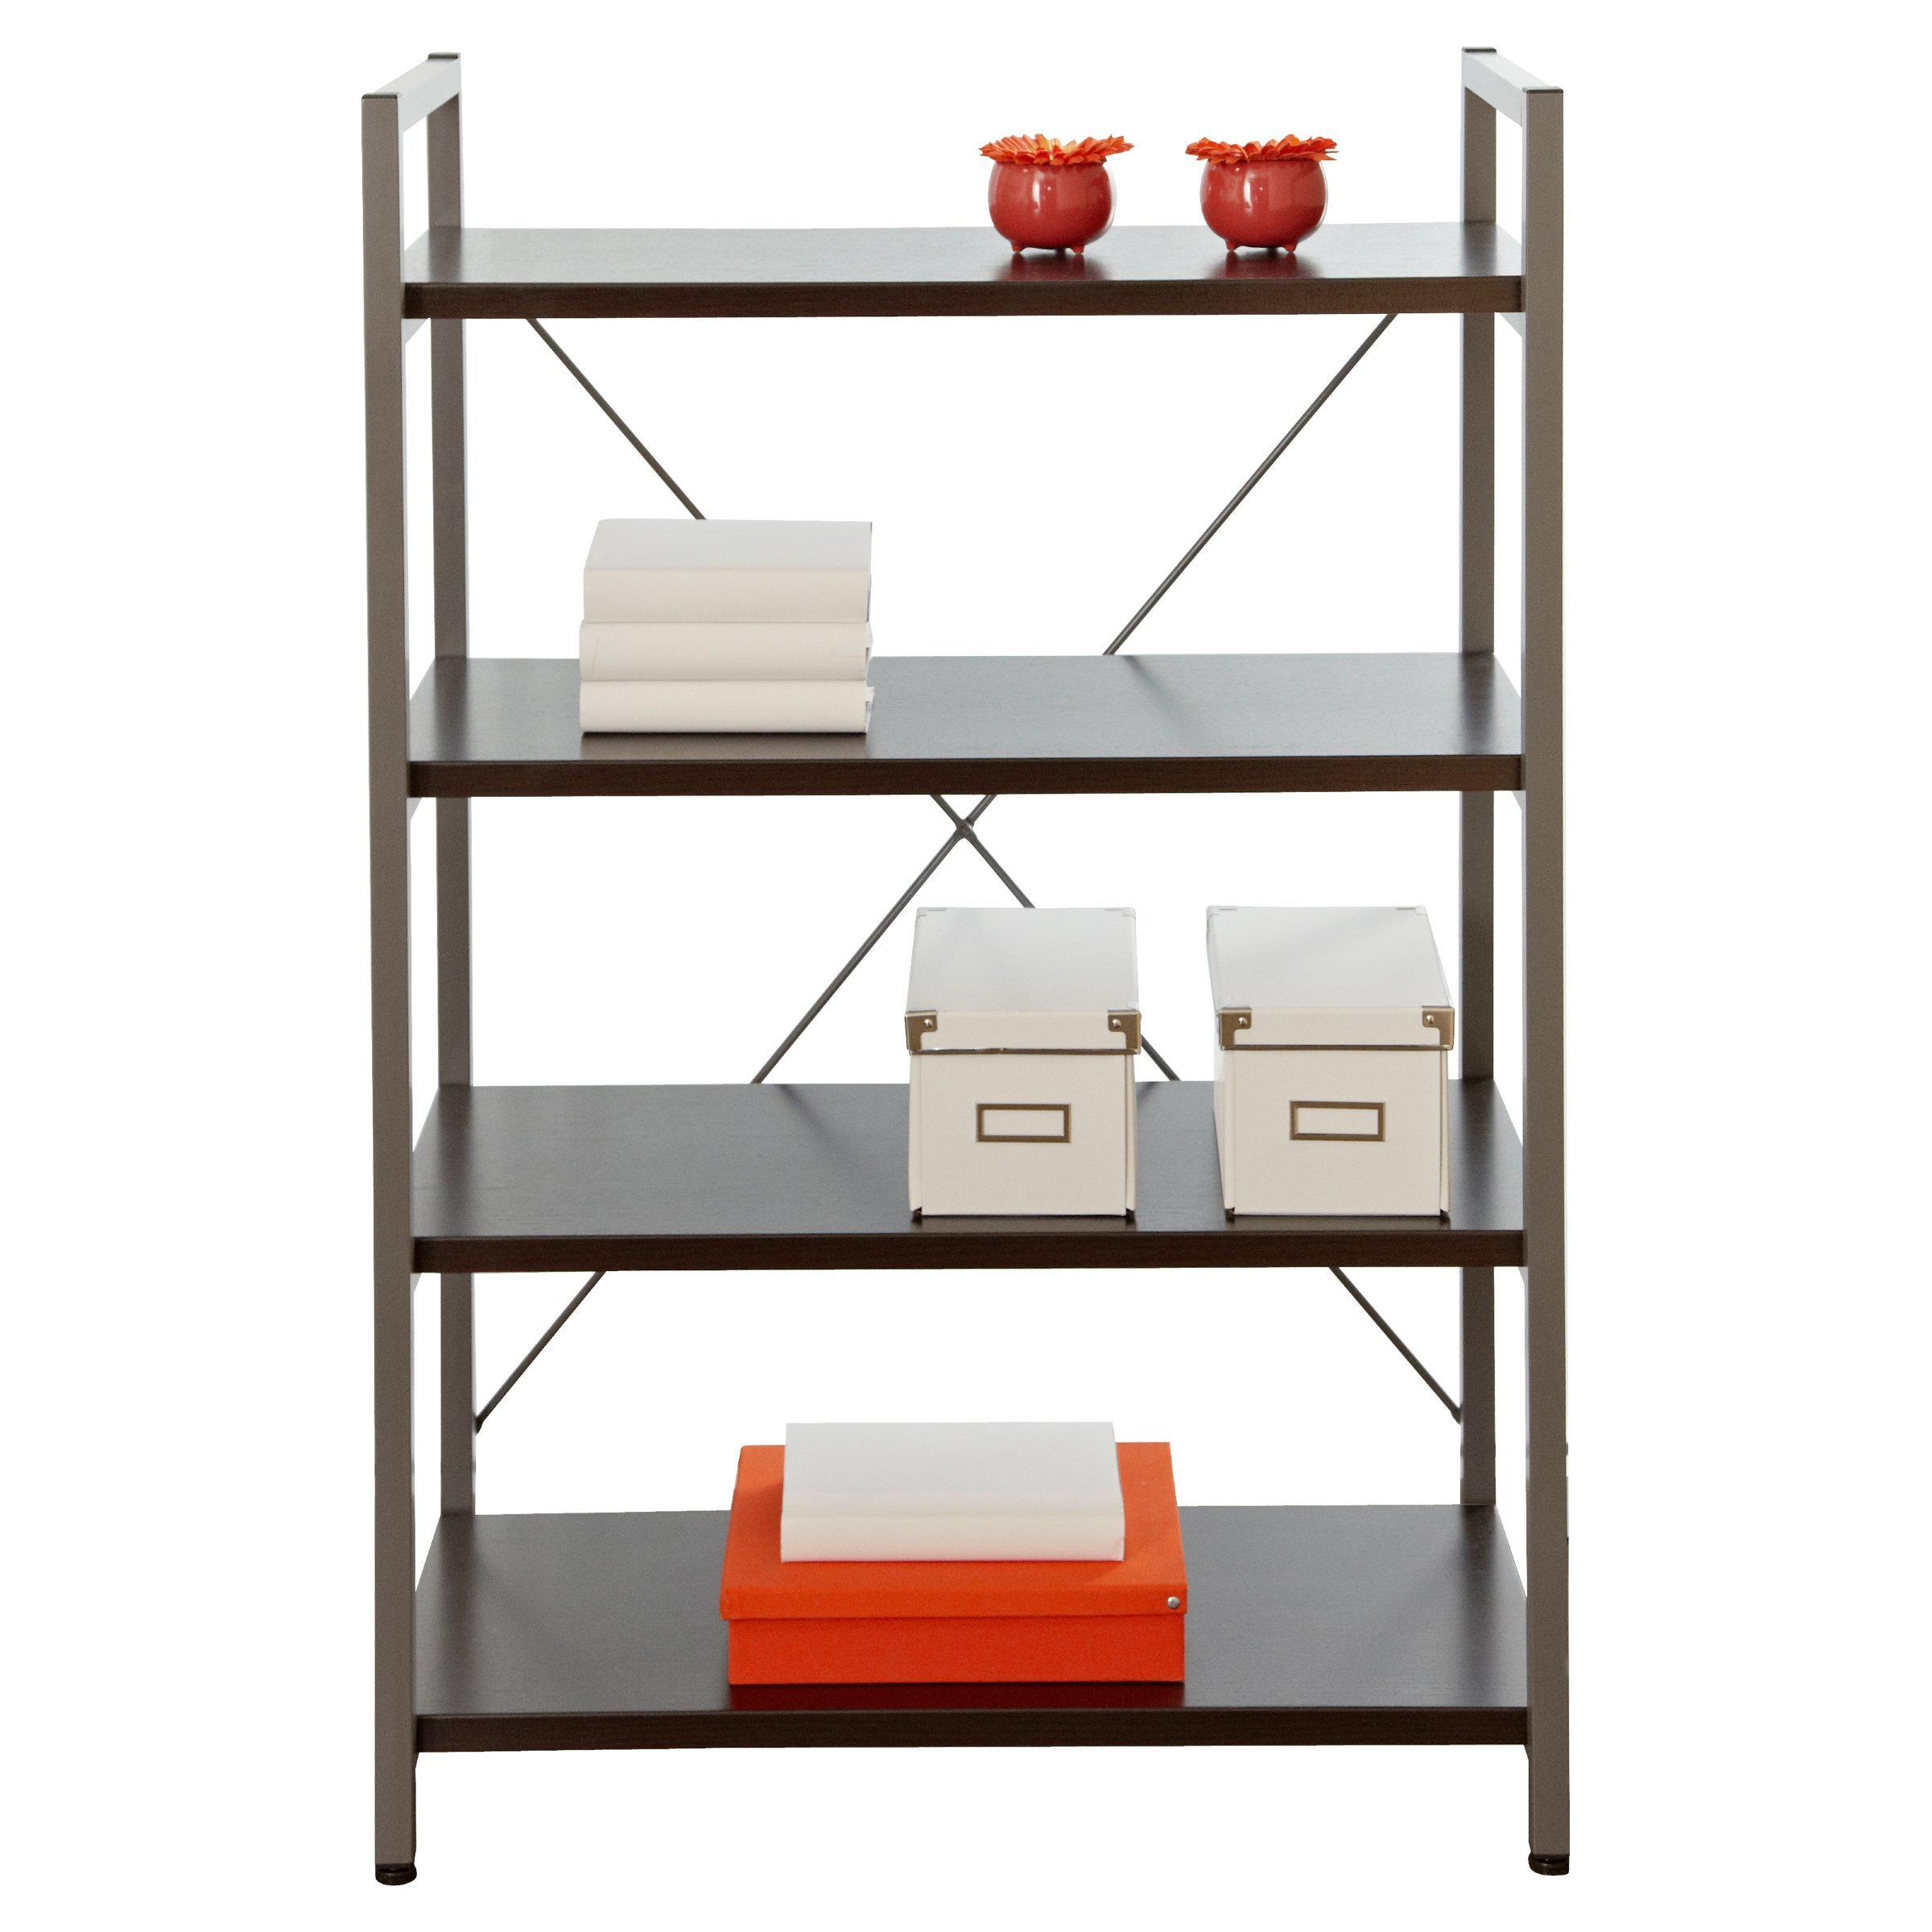 Bookshelves Crafted with a Durable Metal Frame Espresso Modern Bookcase with 4 Shelves - 32W x 16D x 48H in. Assembly Required